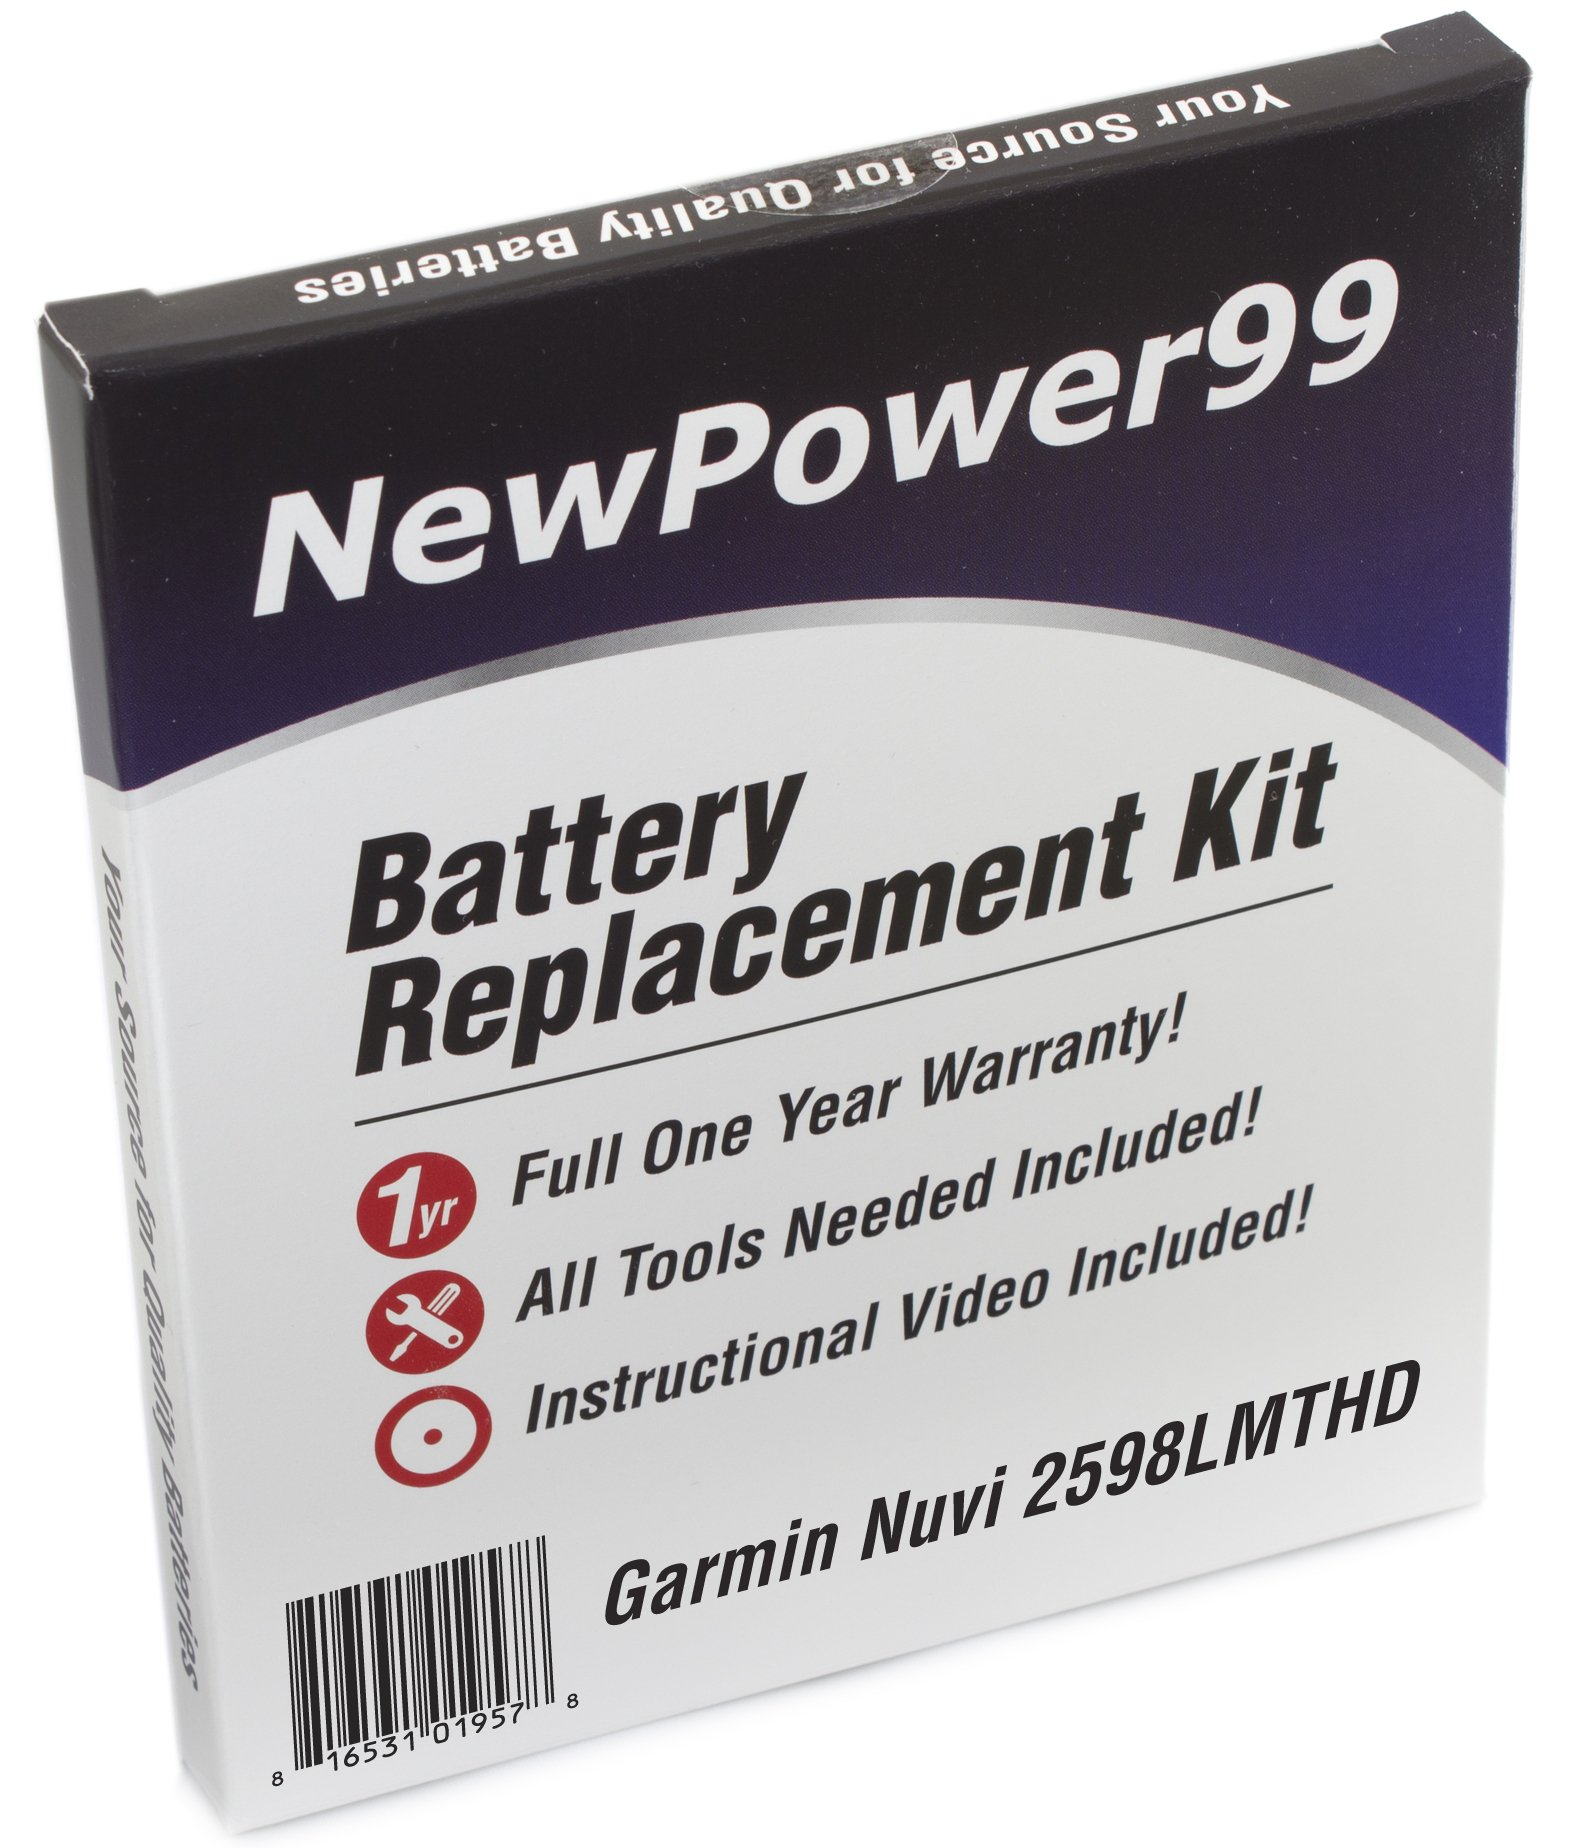 Battery Replacement Kit for Garmin Nuvi 2598LMTHD with Installation Video, Tools, and Extended Life Battery.